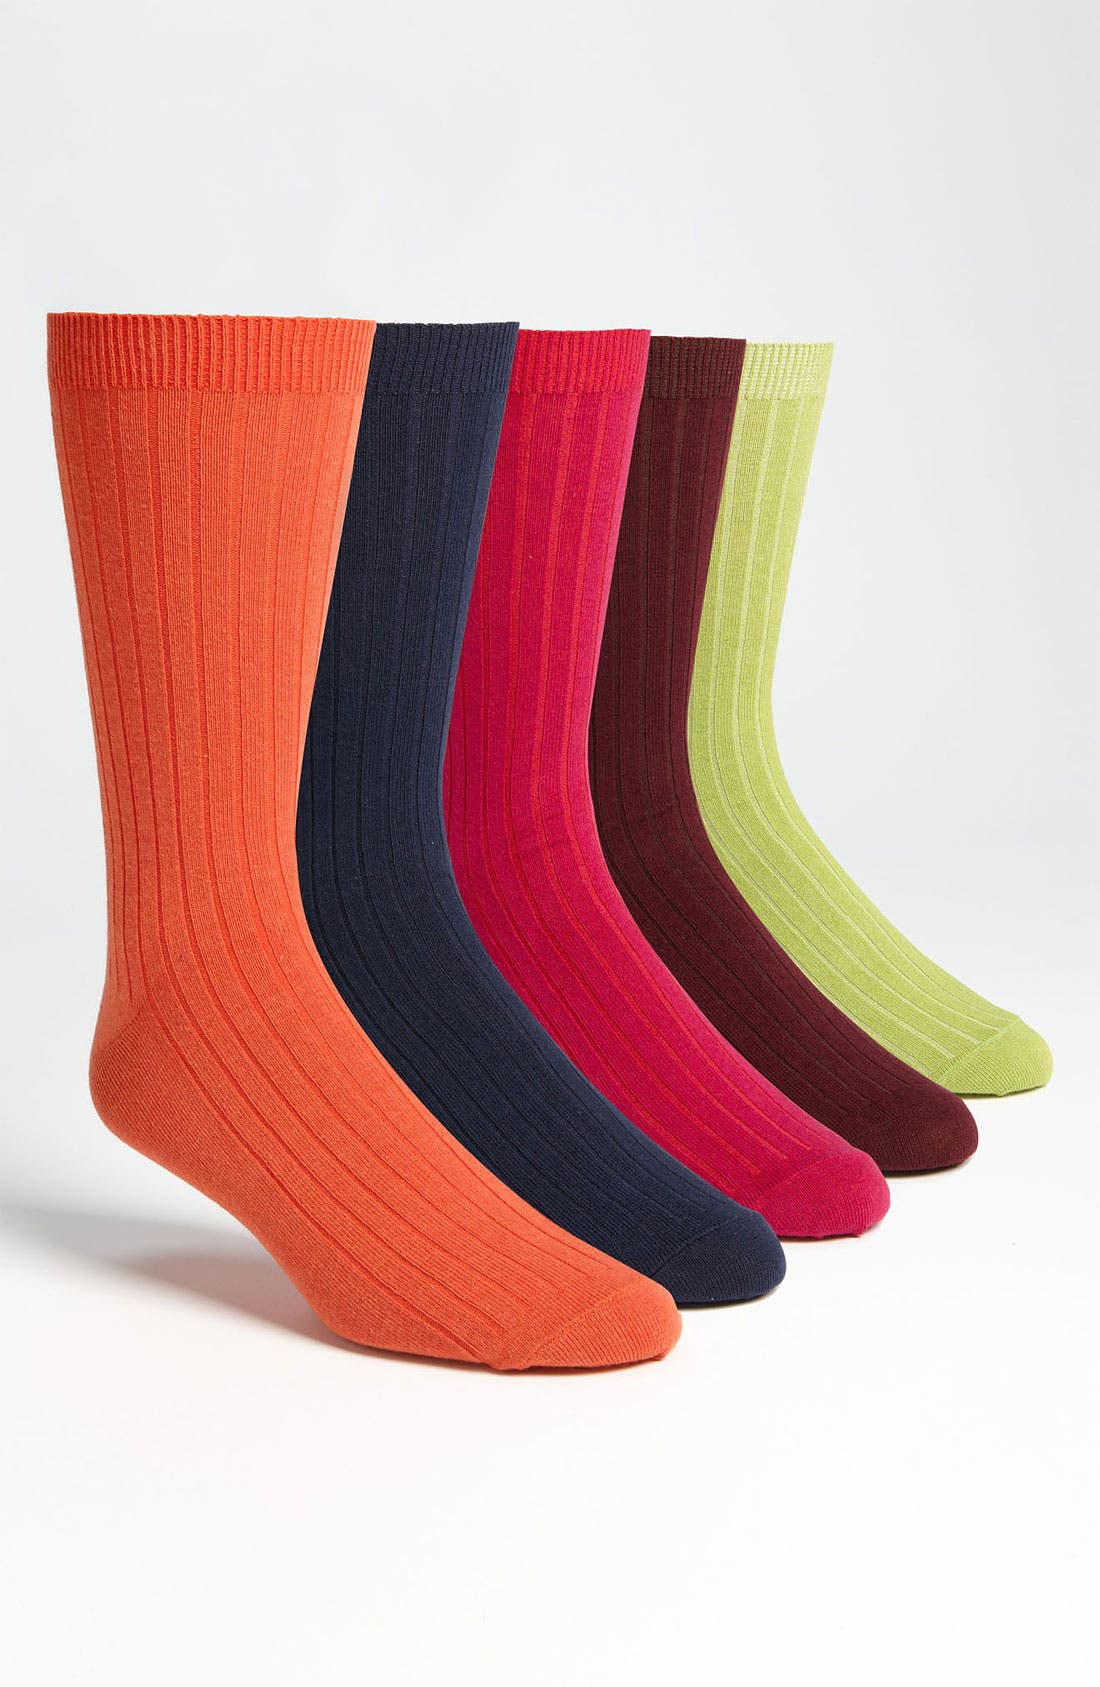 Main Image - Topman 'Hero Workwear' Ribbed Socks (5-Pack)